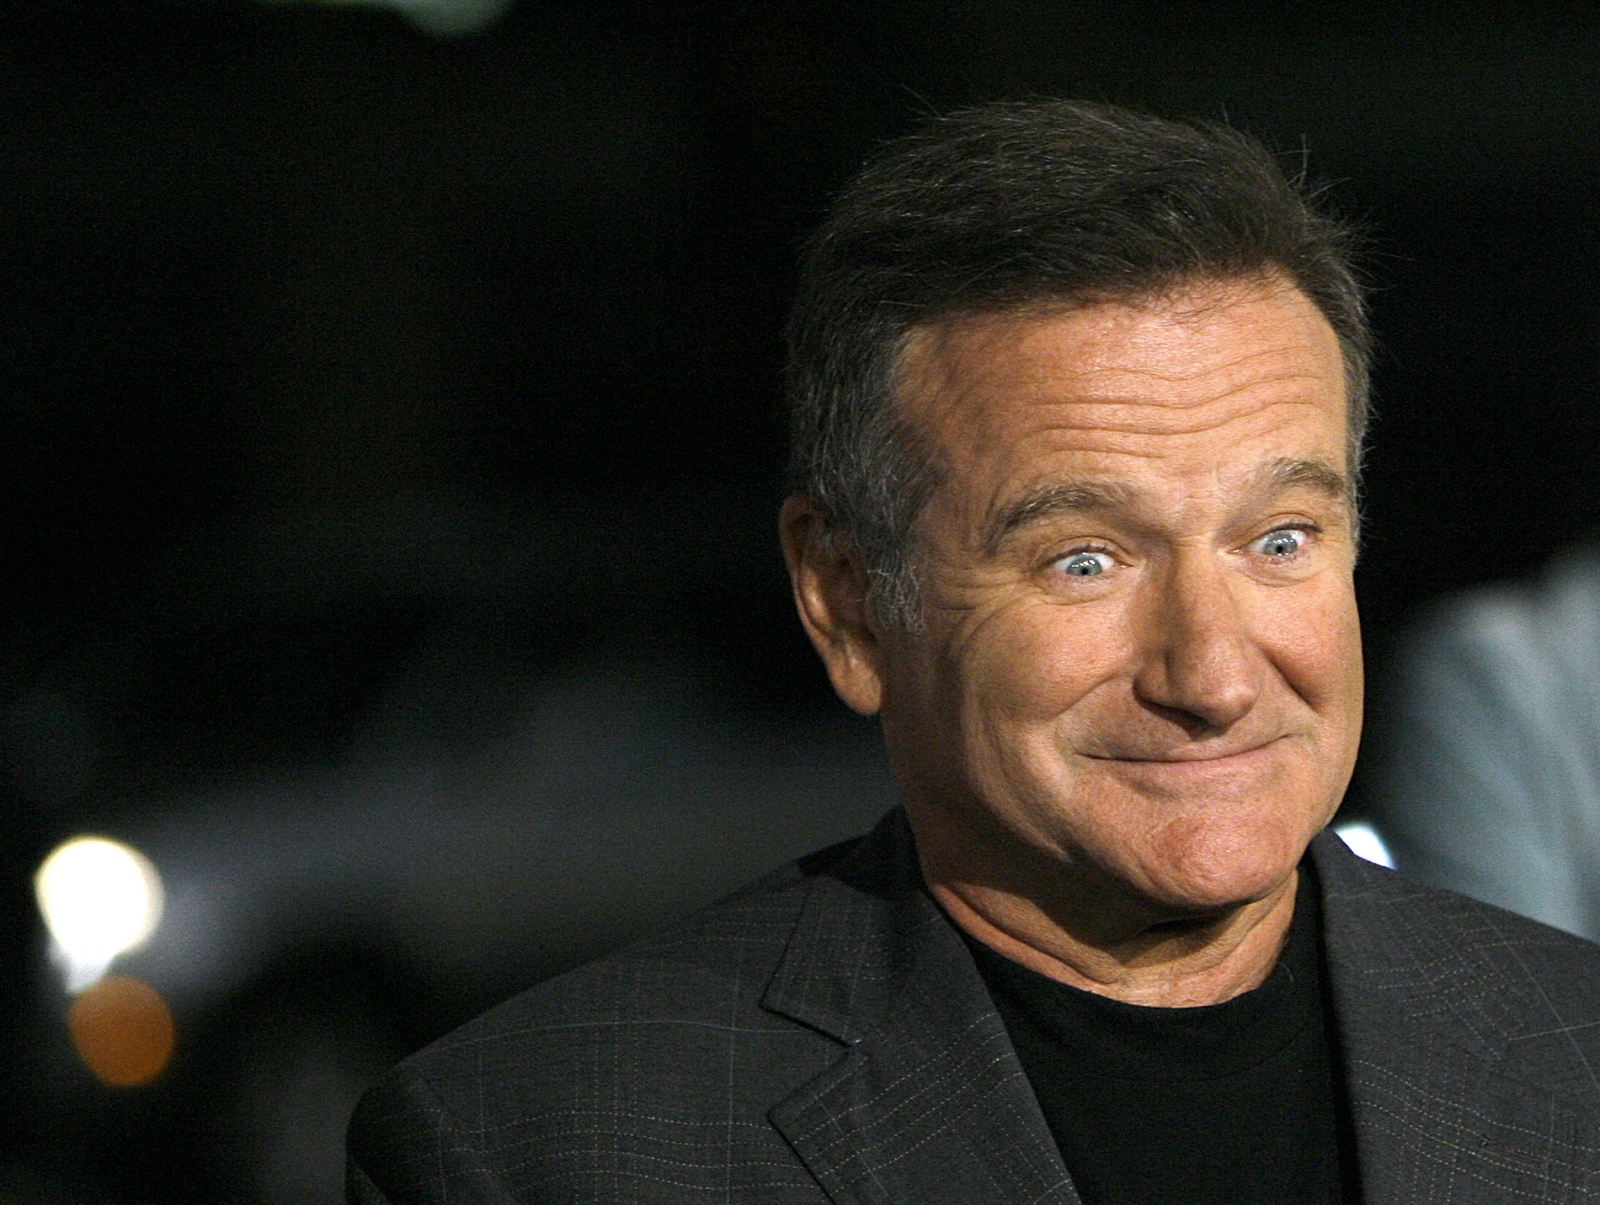 ISIS Robin Williams